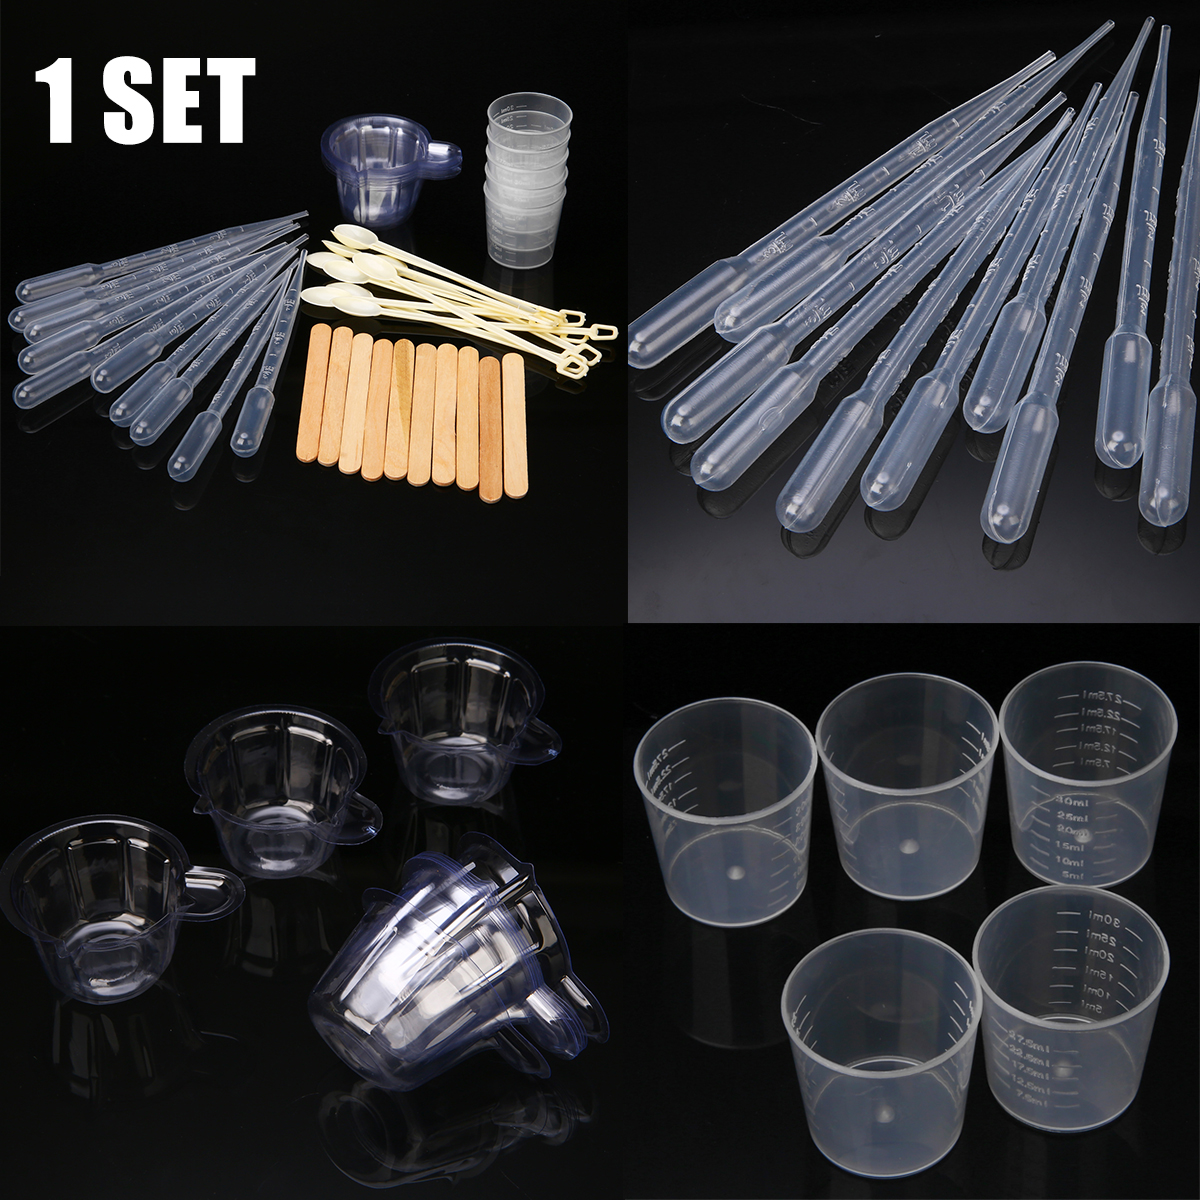 1 Set Making Resin Mould Resin Jewelry Making Tool Casting Handcraft Jewelry Kit With Spoons Cups Sticks Stirrers Droppers